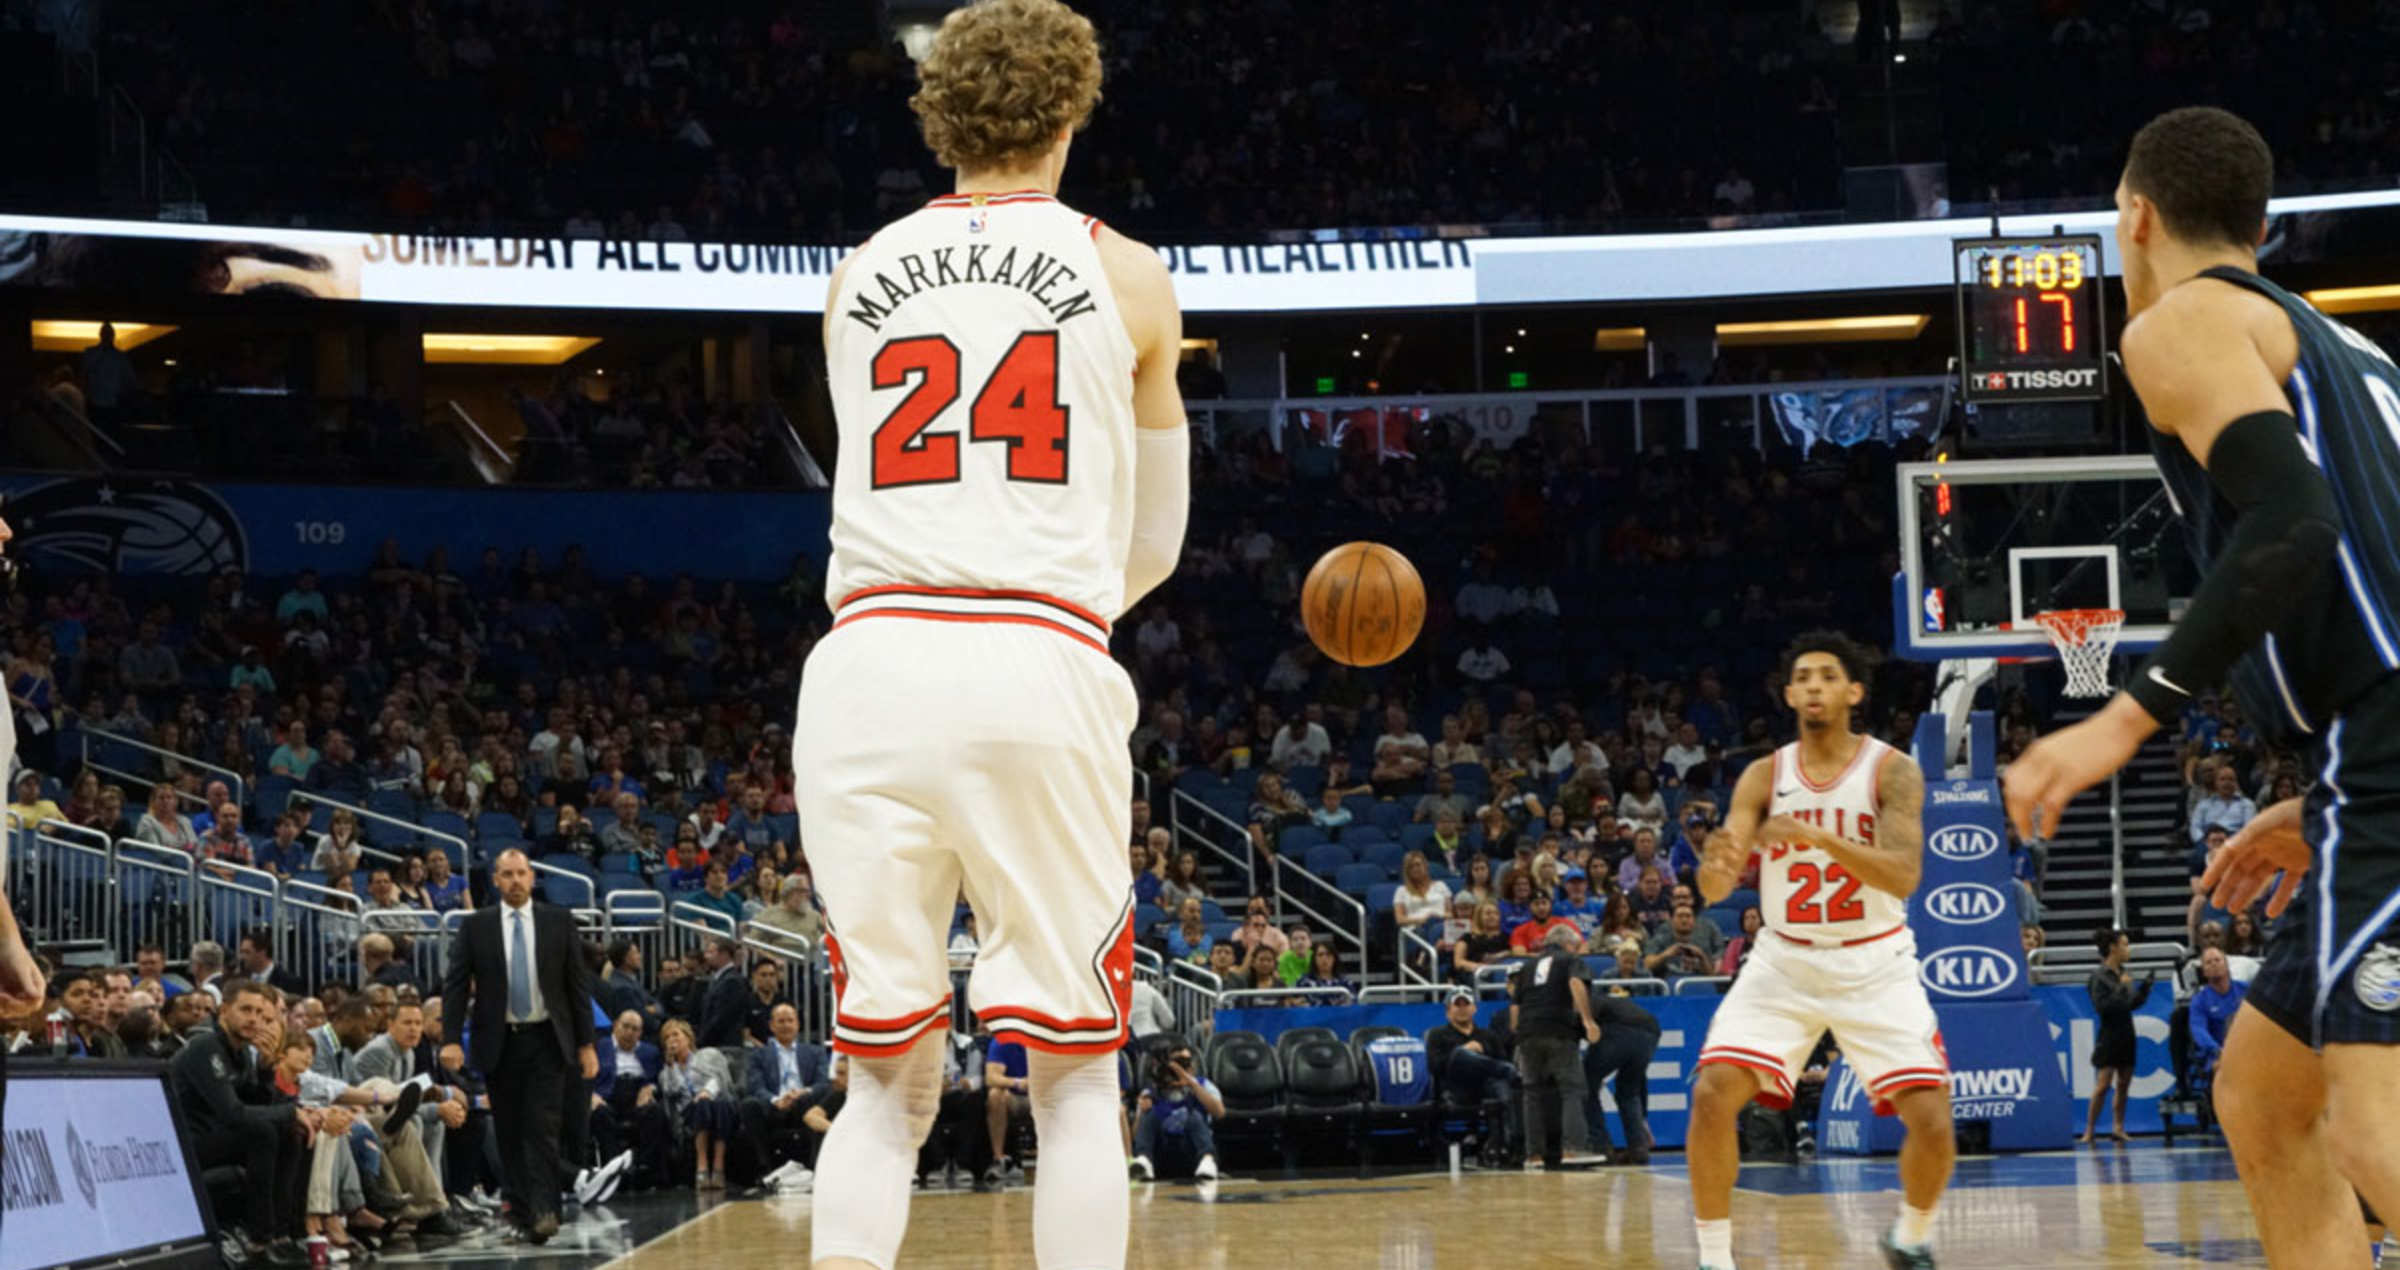 Markkanen passes the ball to Payne in a game against the Orlando Magic.